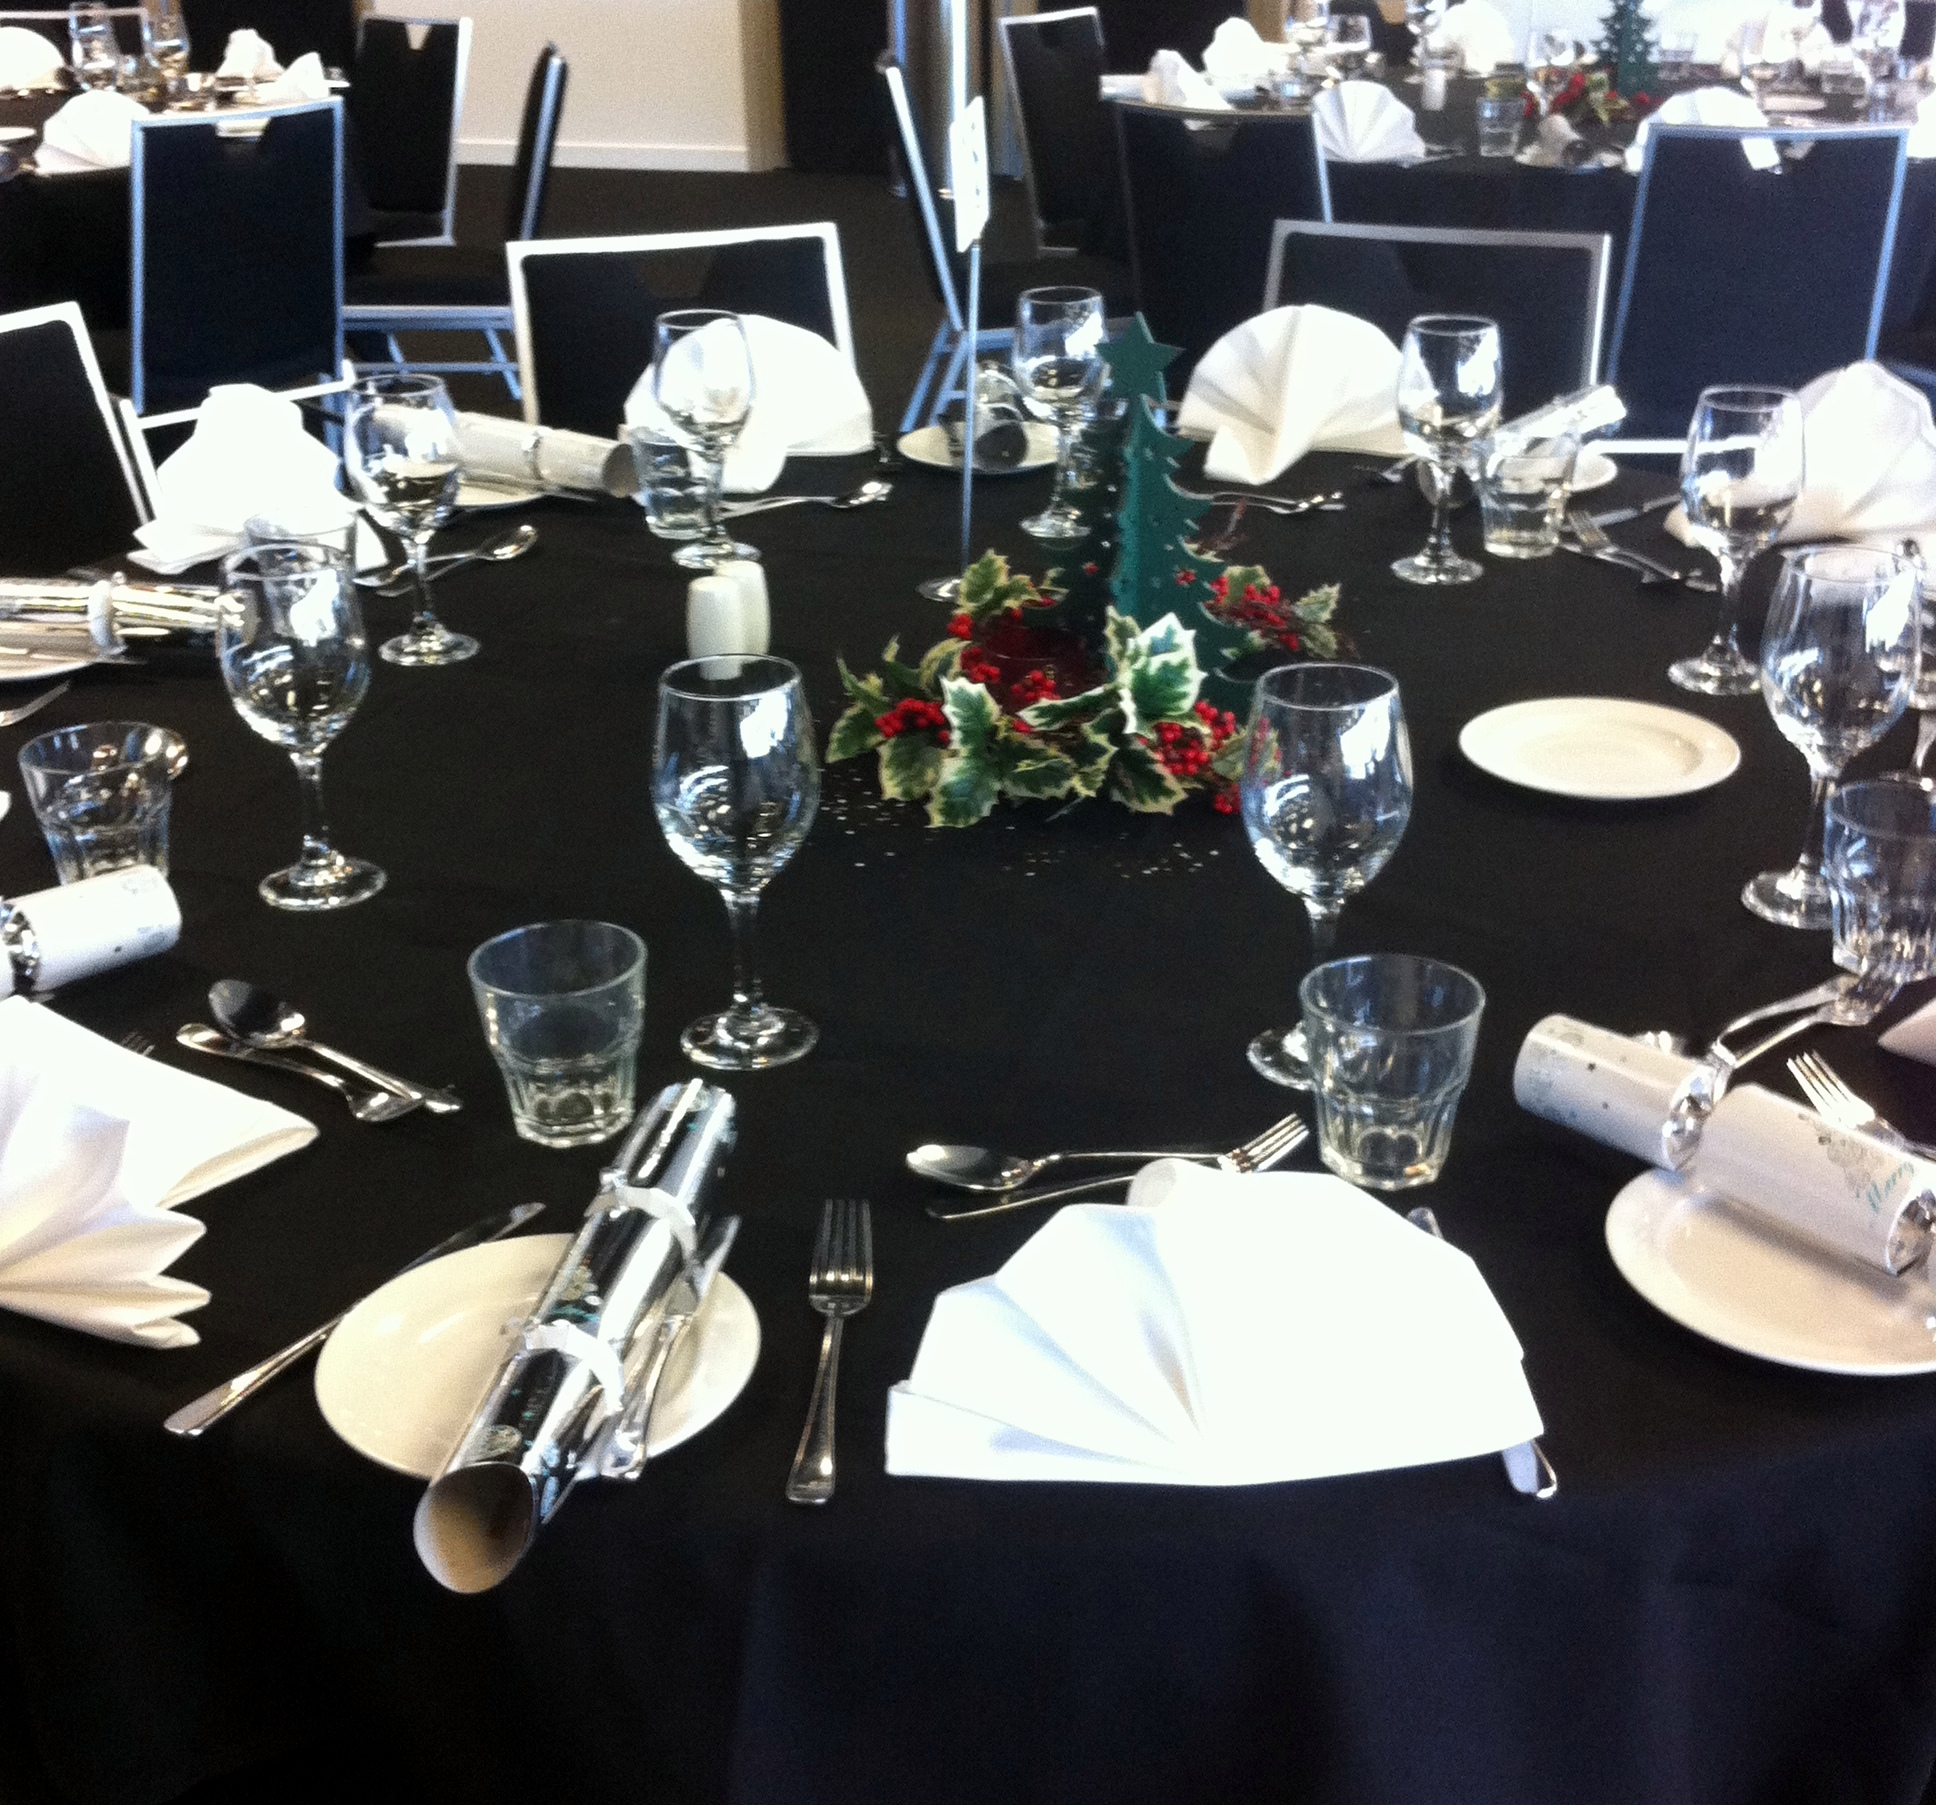 Staff Christmas Parties for small groups. Auckland, Combined staff christmas parties. Dinner theatre shows. Christmas dinner, show and dance. Staff Christmas party ideas. https://www.talentonline.co.nz/database/combined-staff-christmas-parties-auckland.html